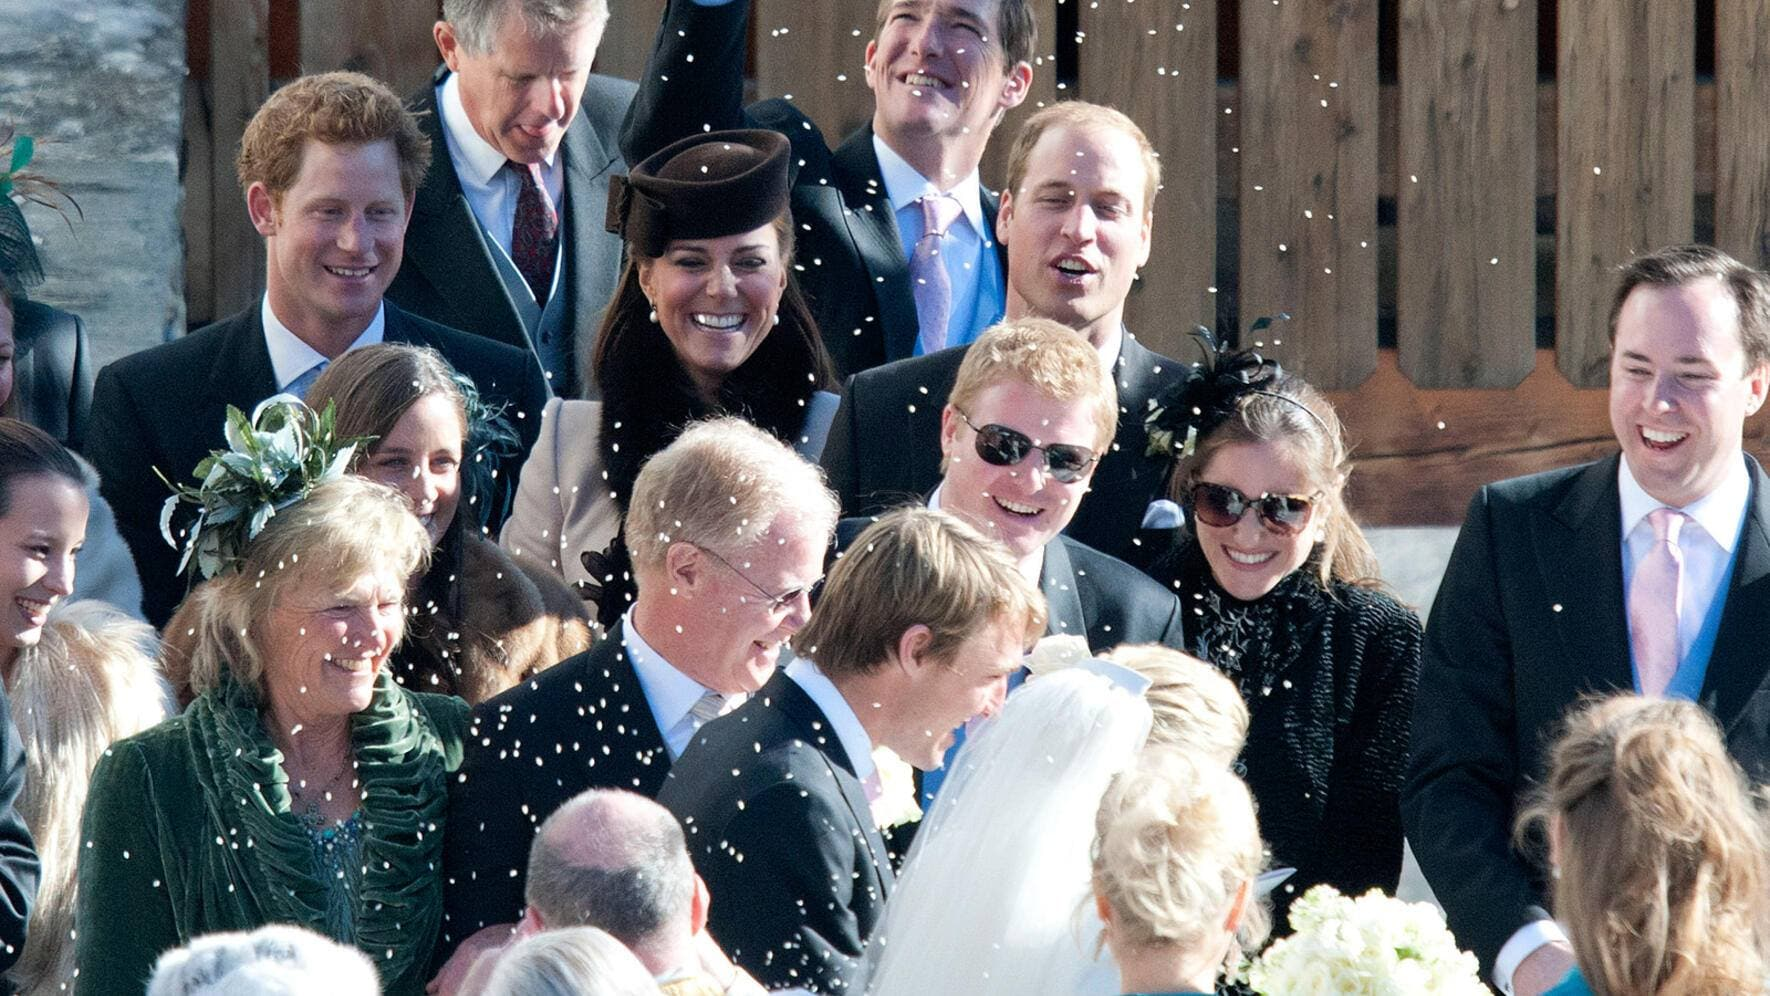 Prinz William Herzogin Kate Middleton Catherine Prinz Harry in Arosa an Hochzeit neue Bilder